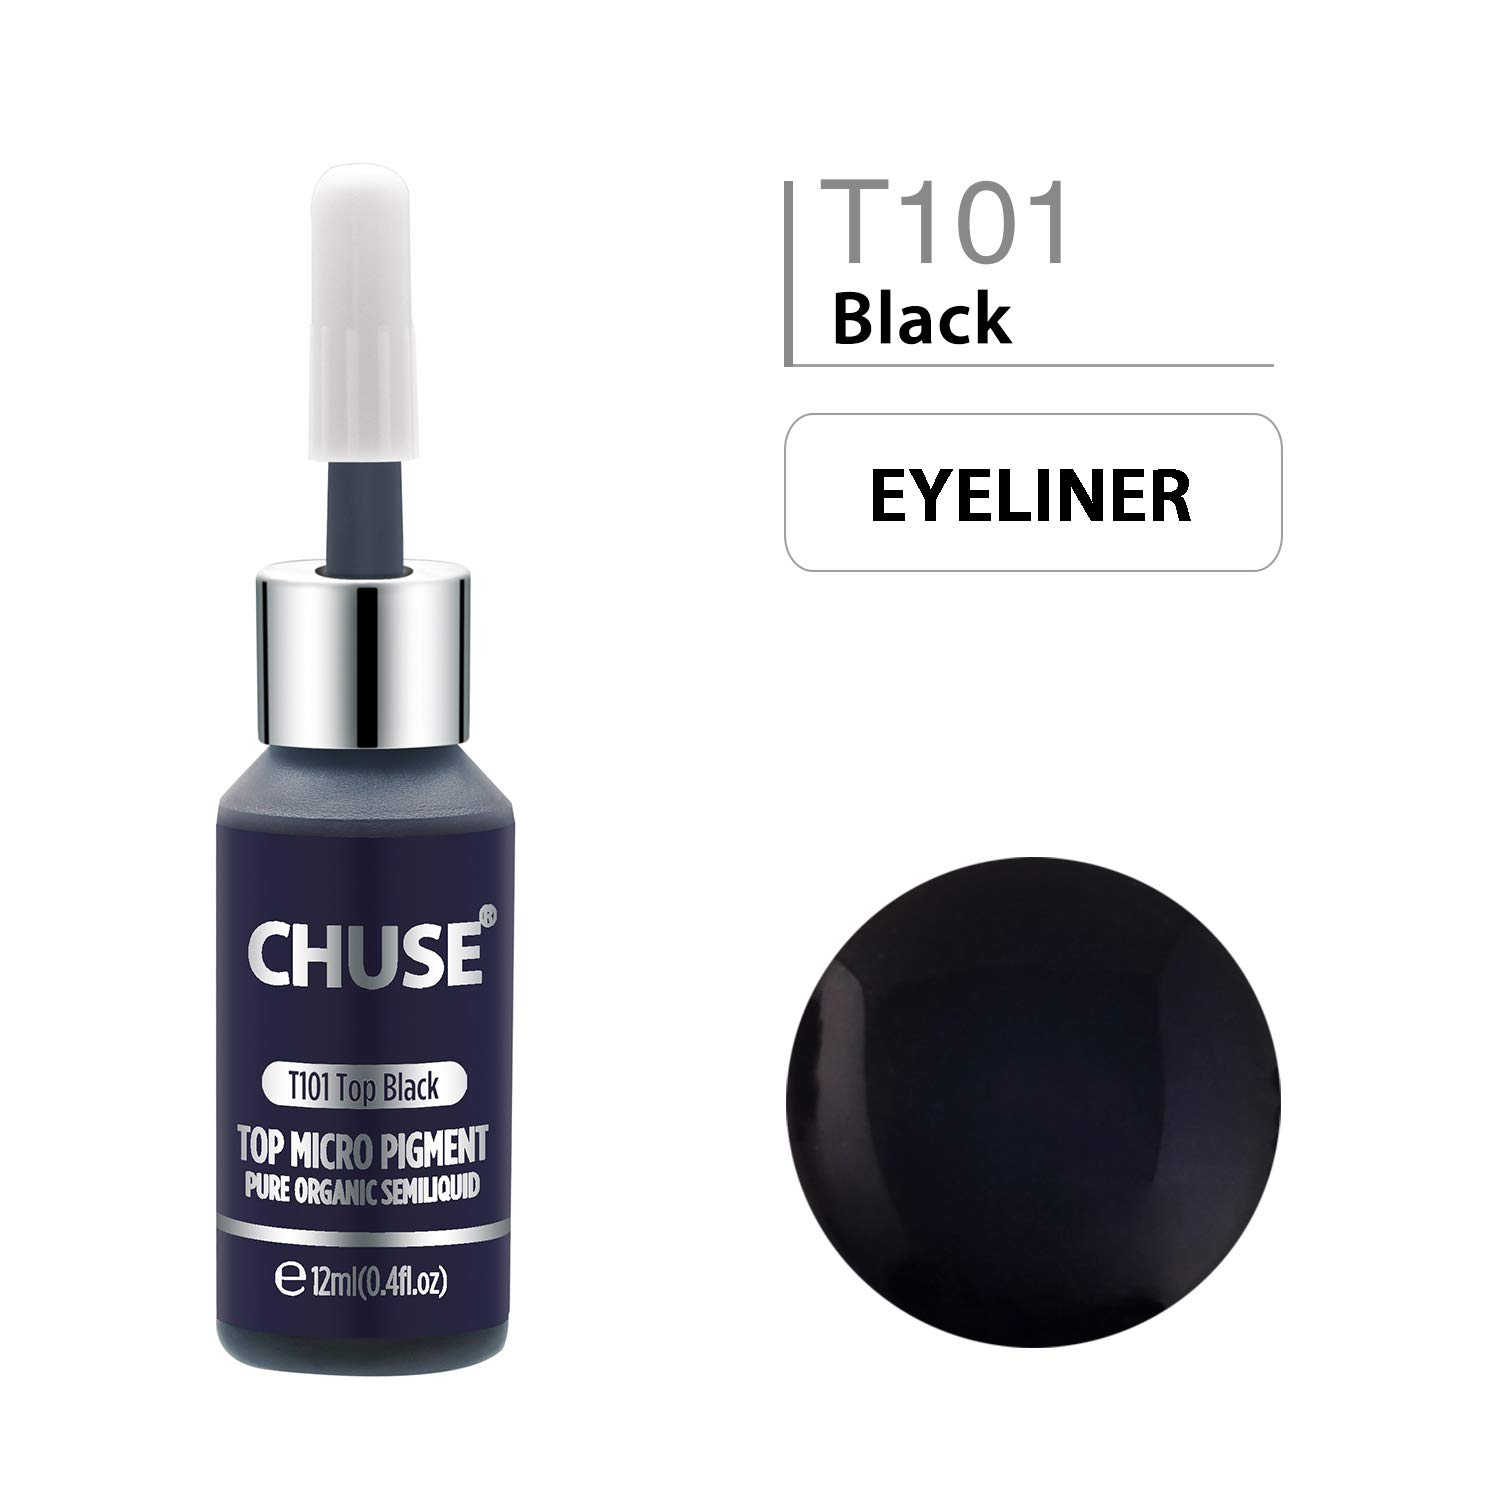 CHUSE T101, 12ml, Top Black, Passed SGS,DermaTest Top Micro Pigment Cosmetic Color Permanent Makeup Tattoo Ink